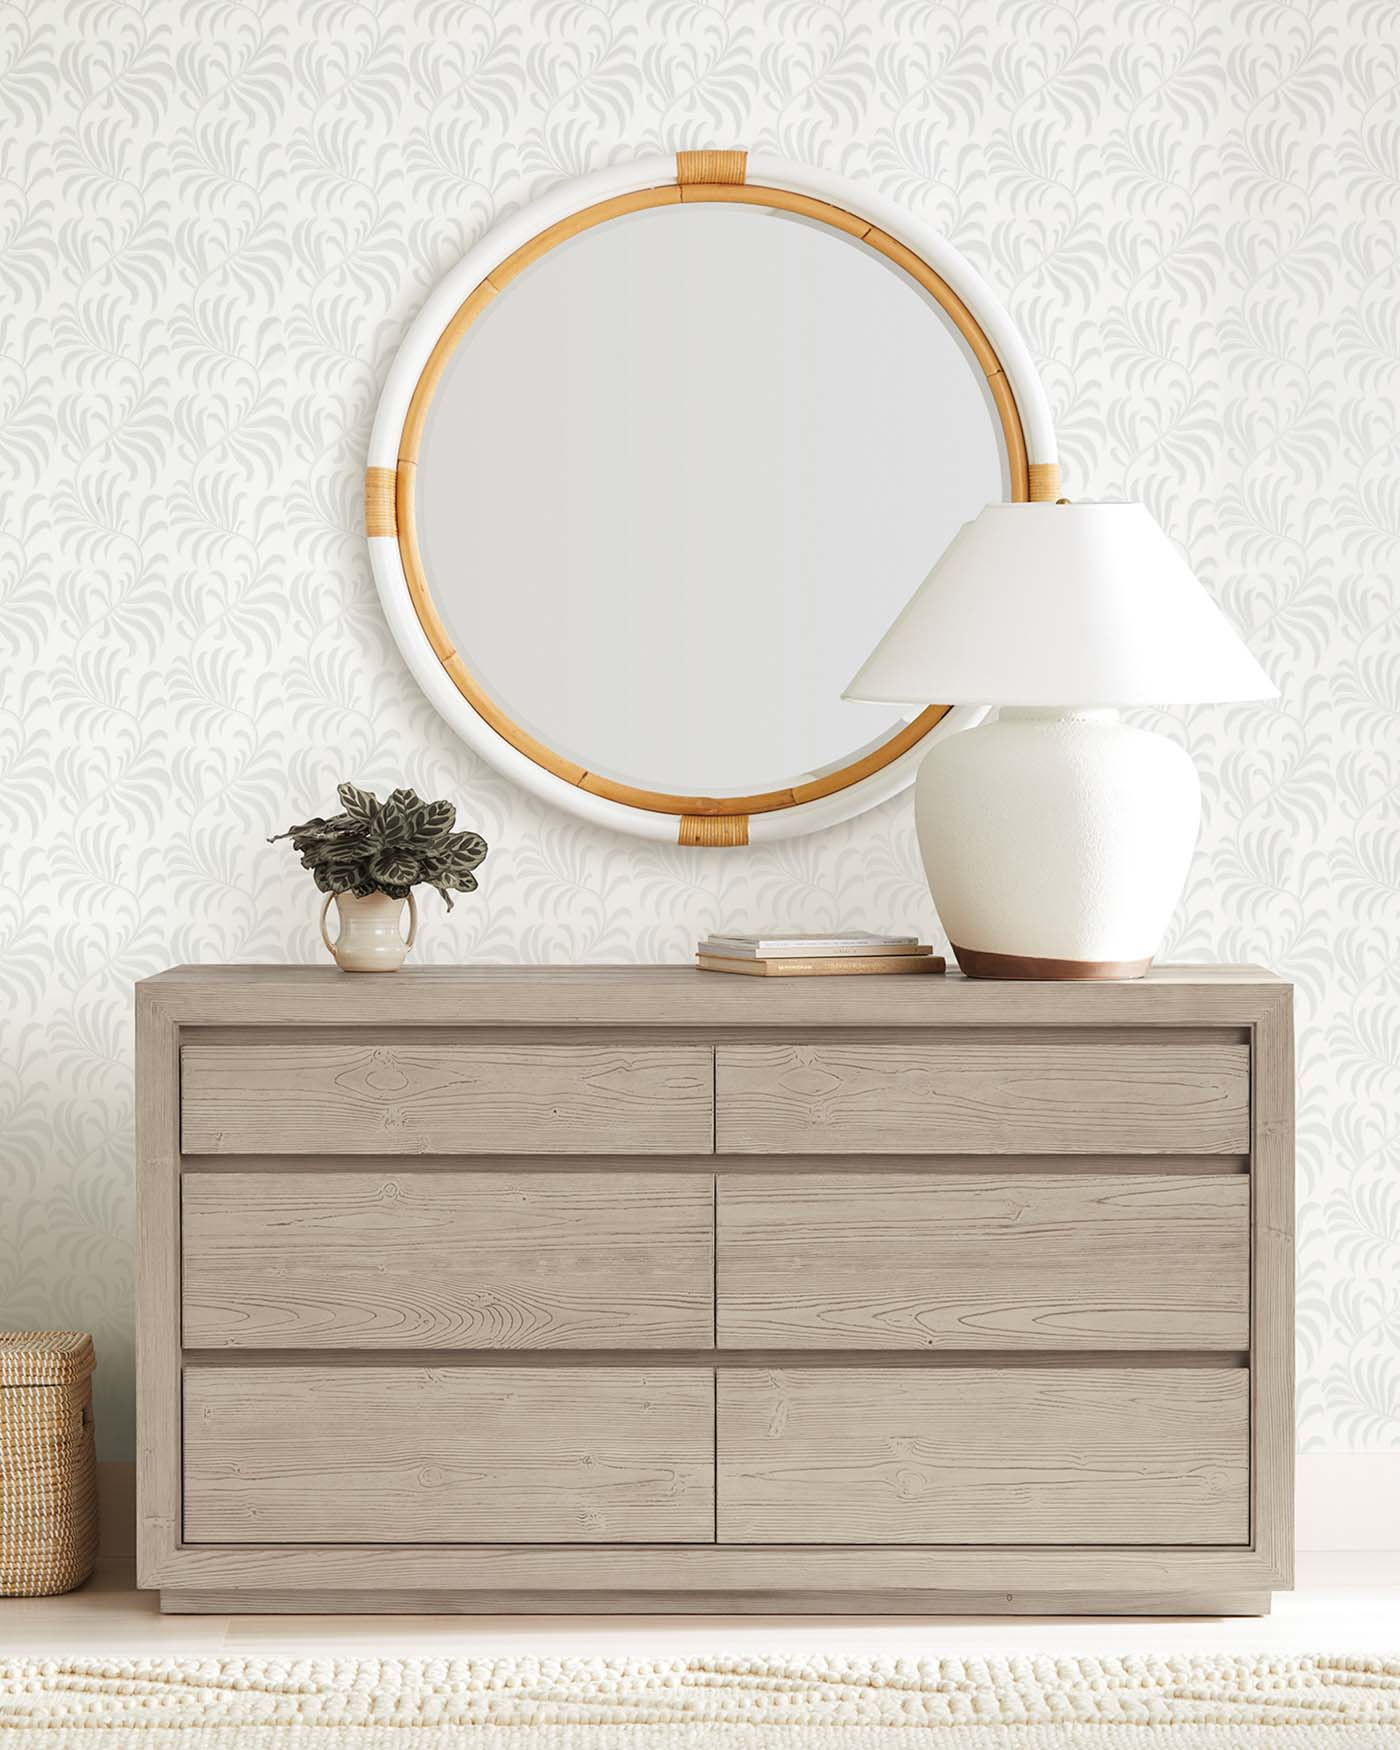 Love the look of the round rattan mirror over the dresser!